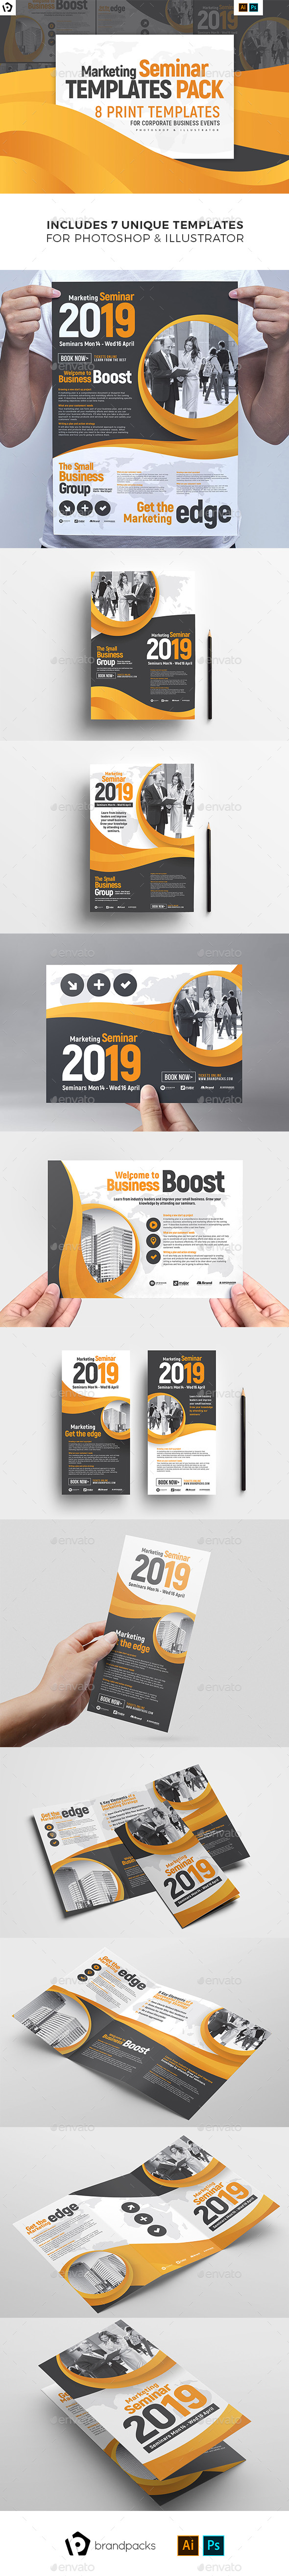 Corporate Event Templates Bundle - Corporate Flyers